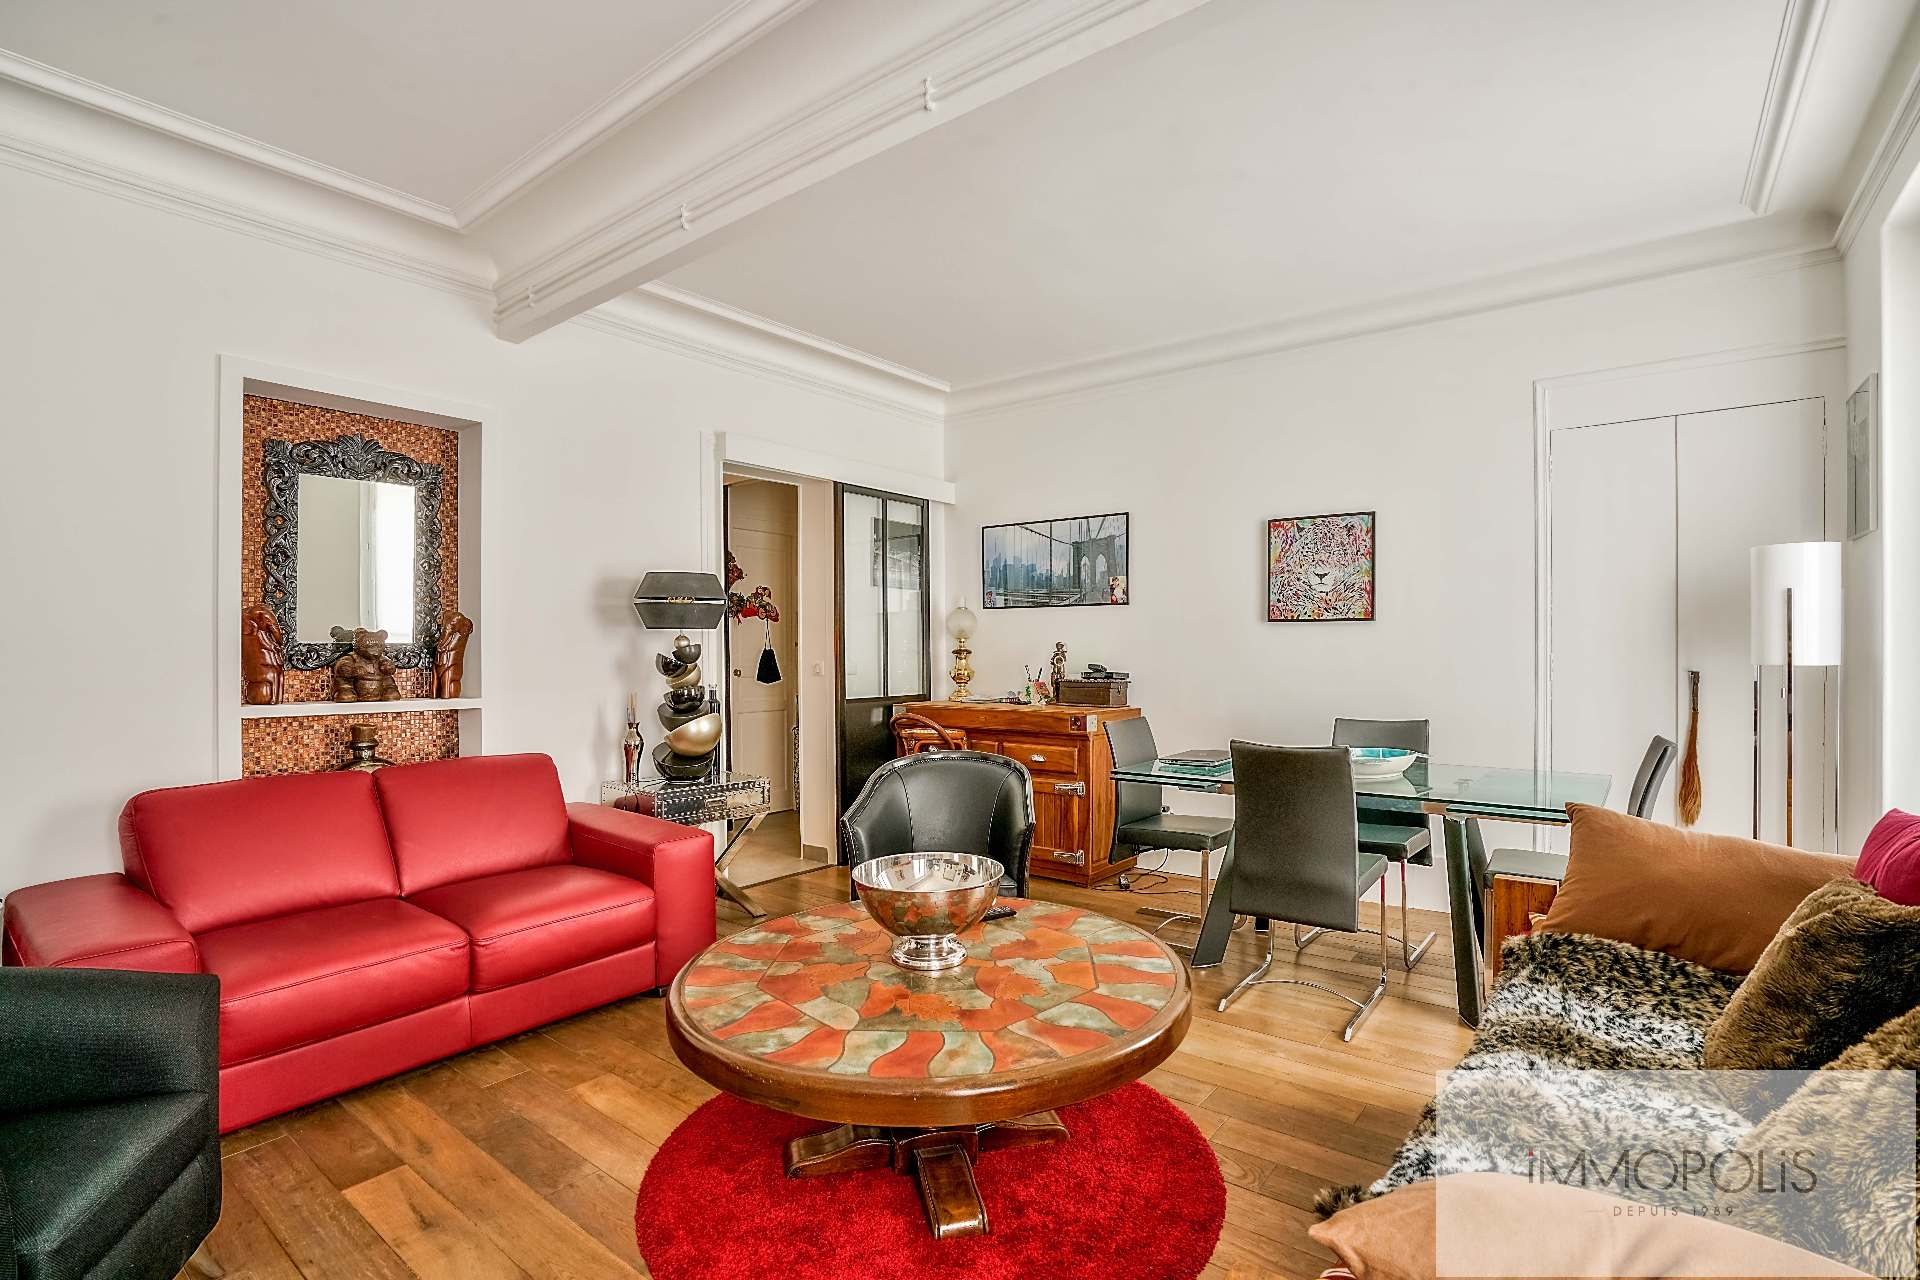 Abbesses, rue Constance: superb 3-room apartment (1 bedroom) on the 3rd floor with elevator: very nice amenities! 9